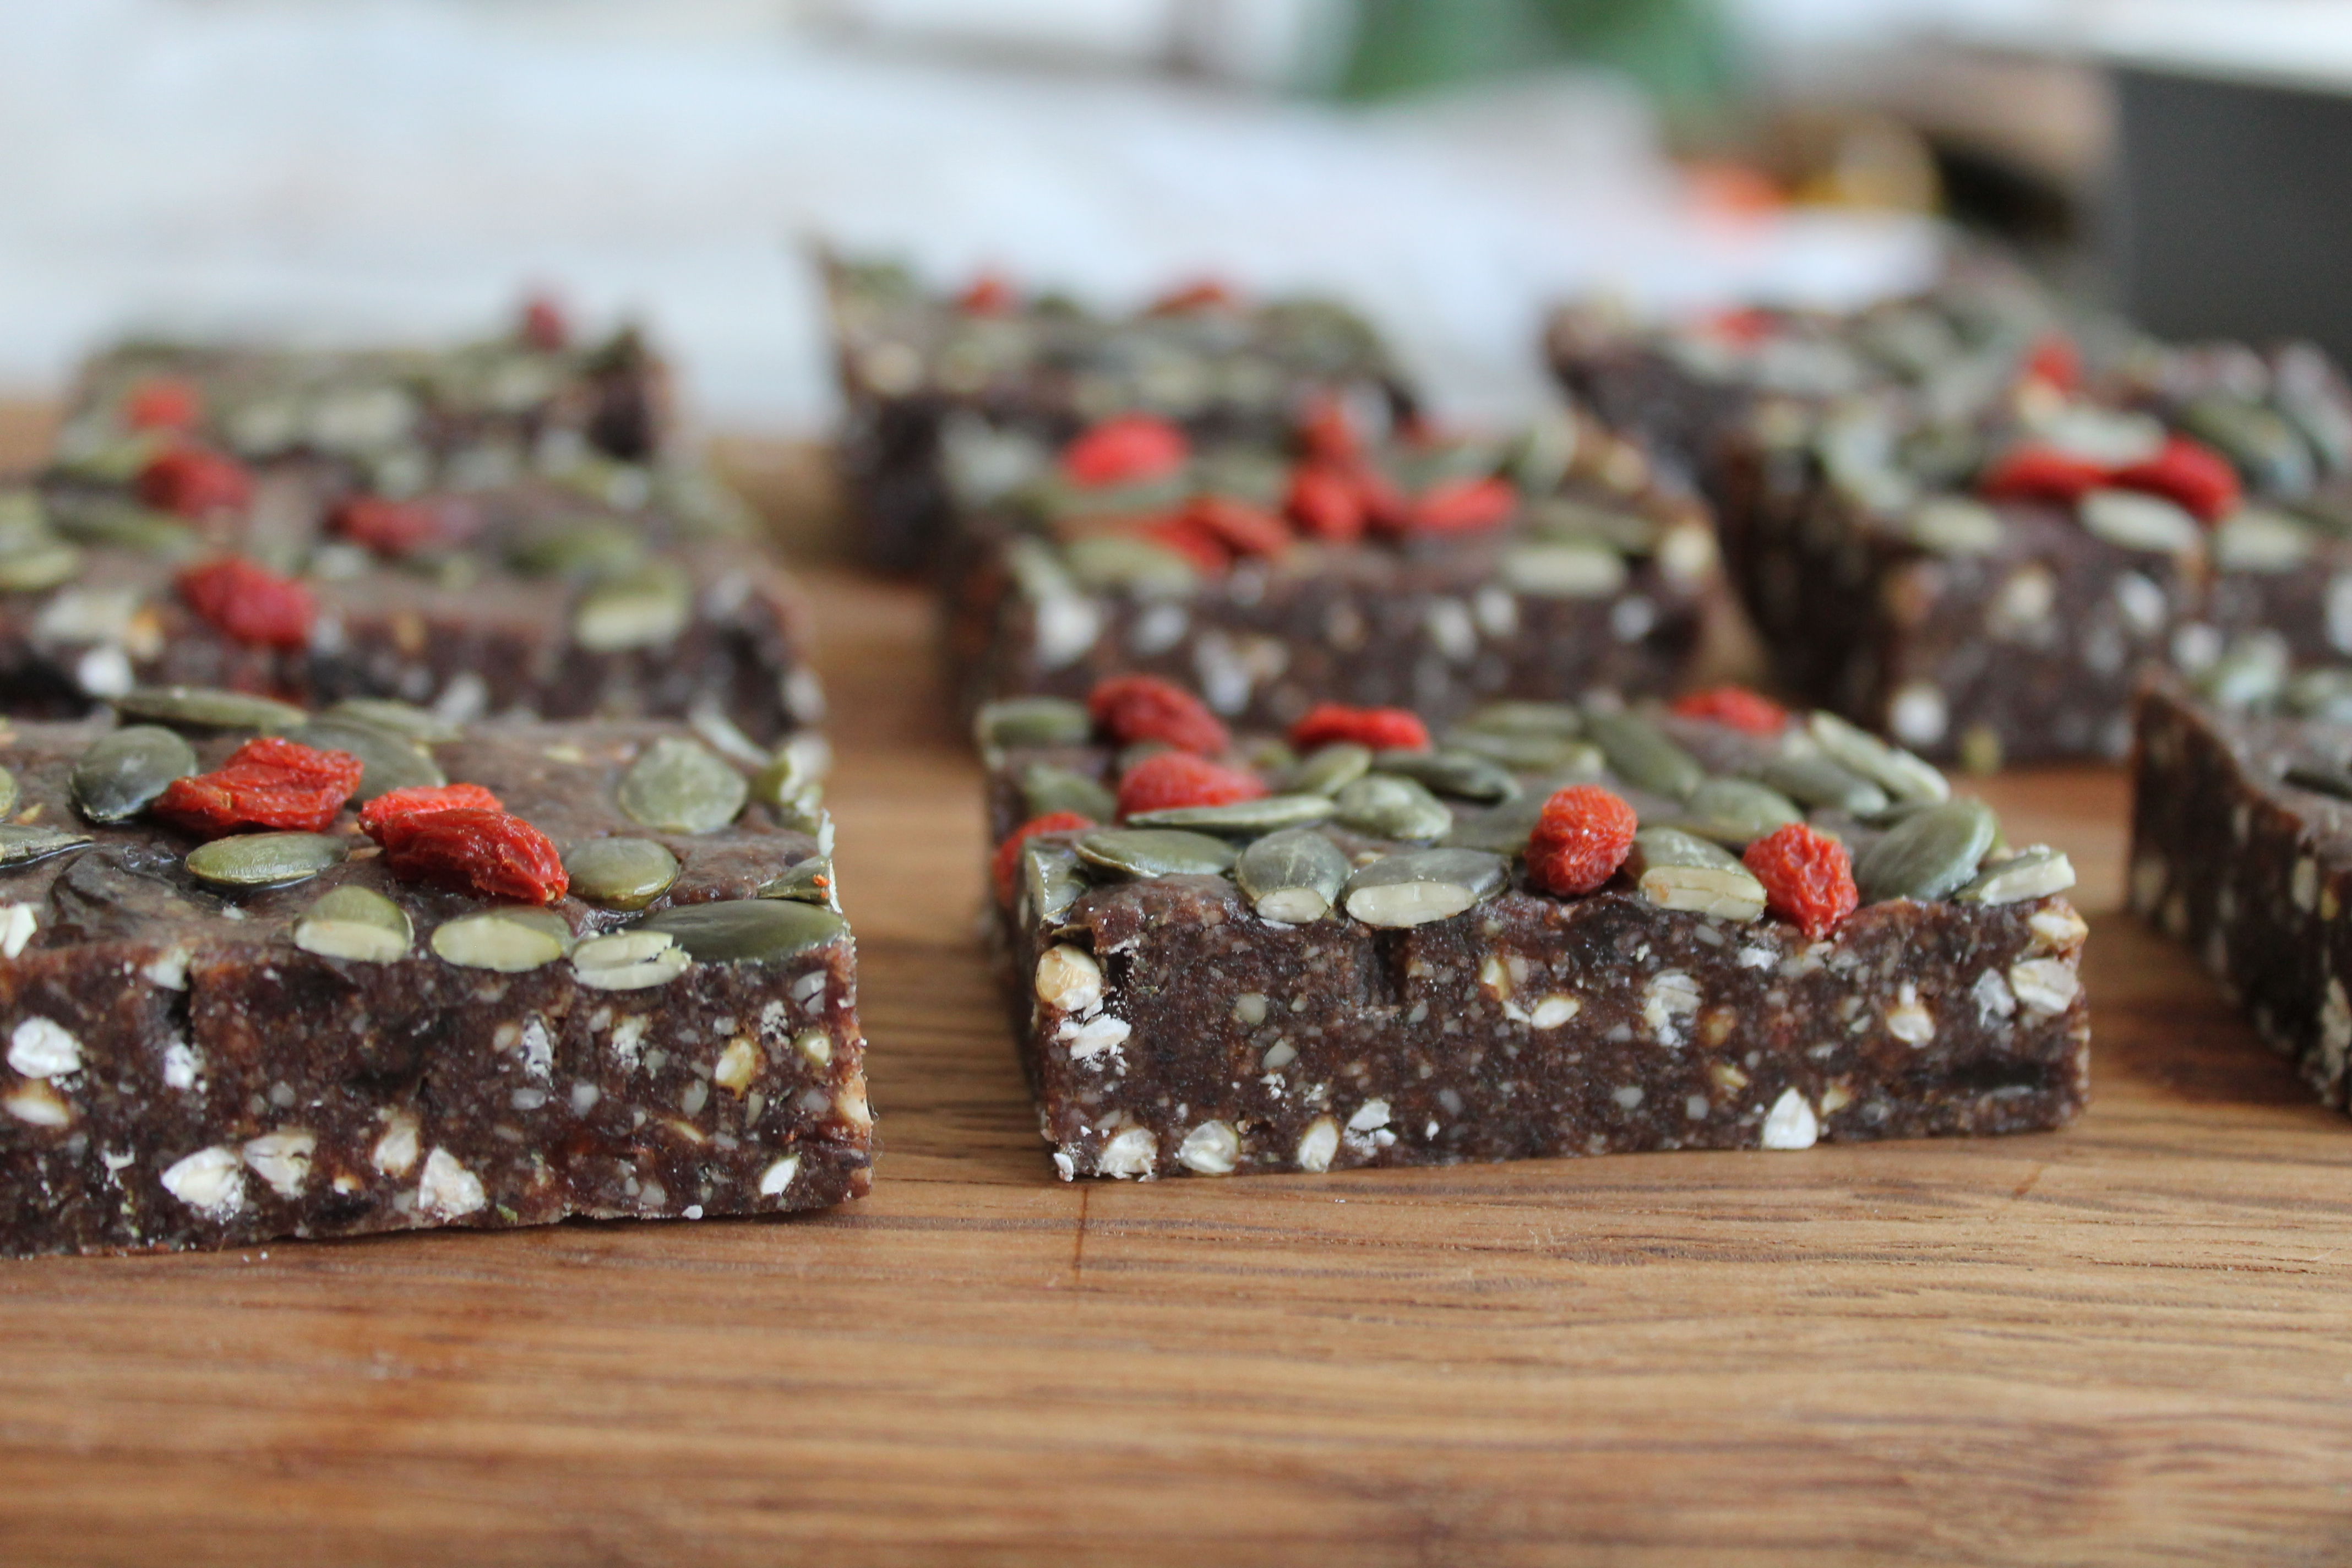 Raw Crunchy Raisins and Chocolate slices